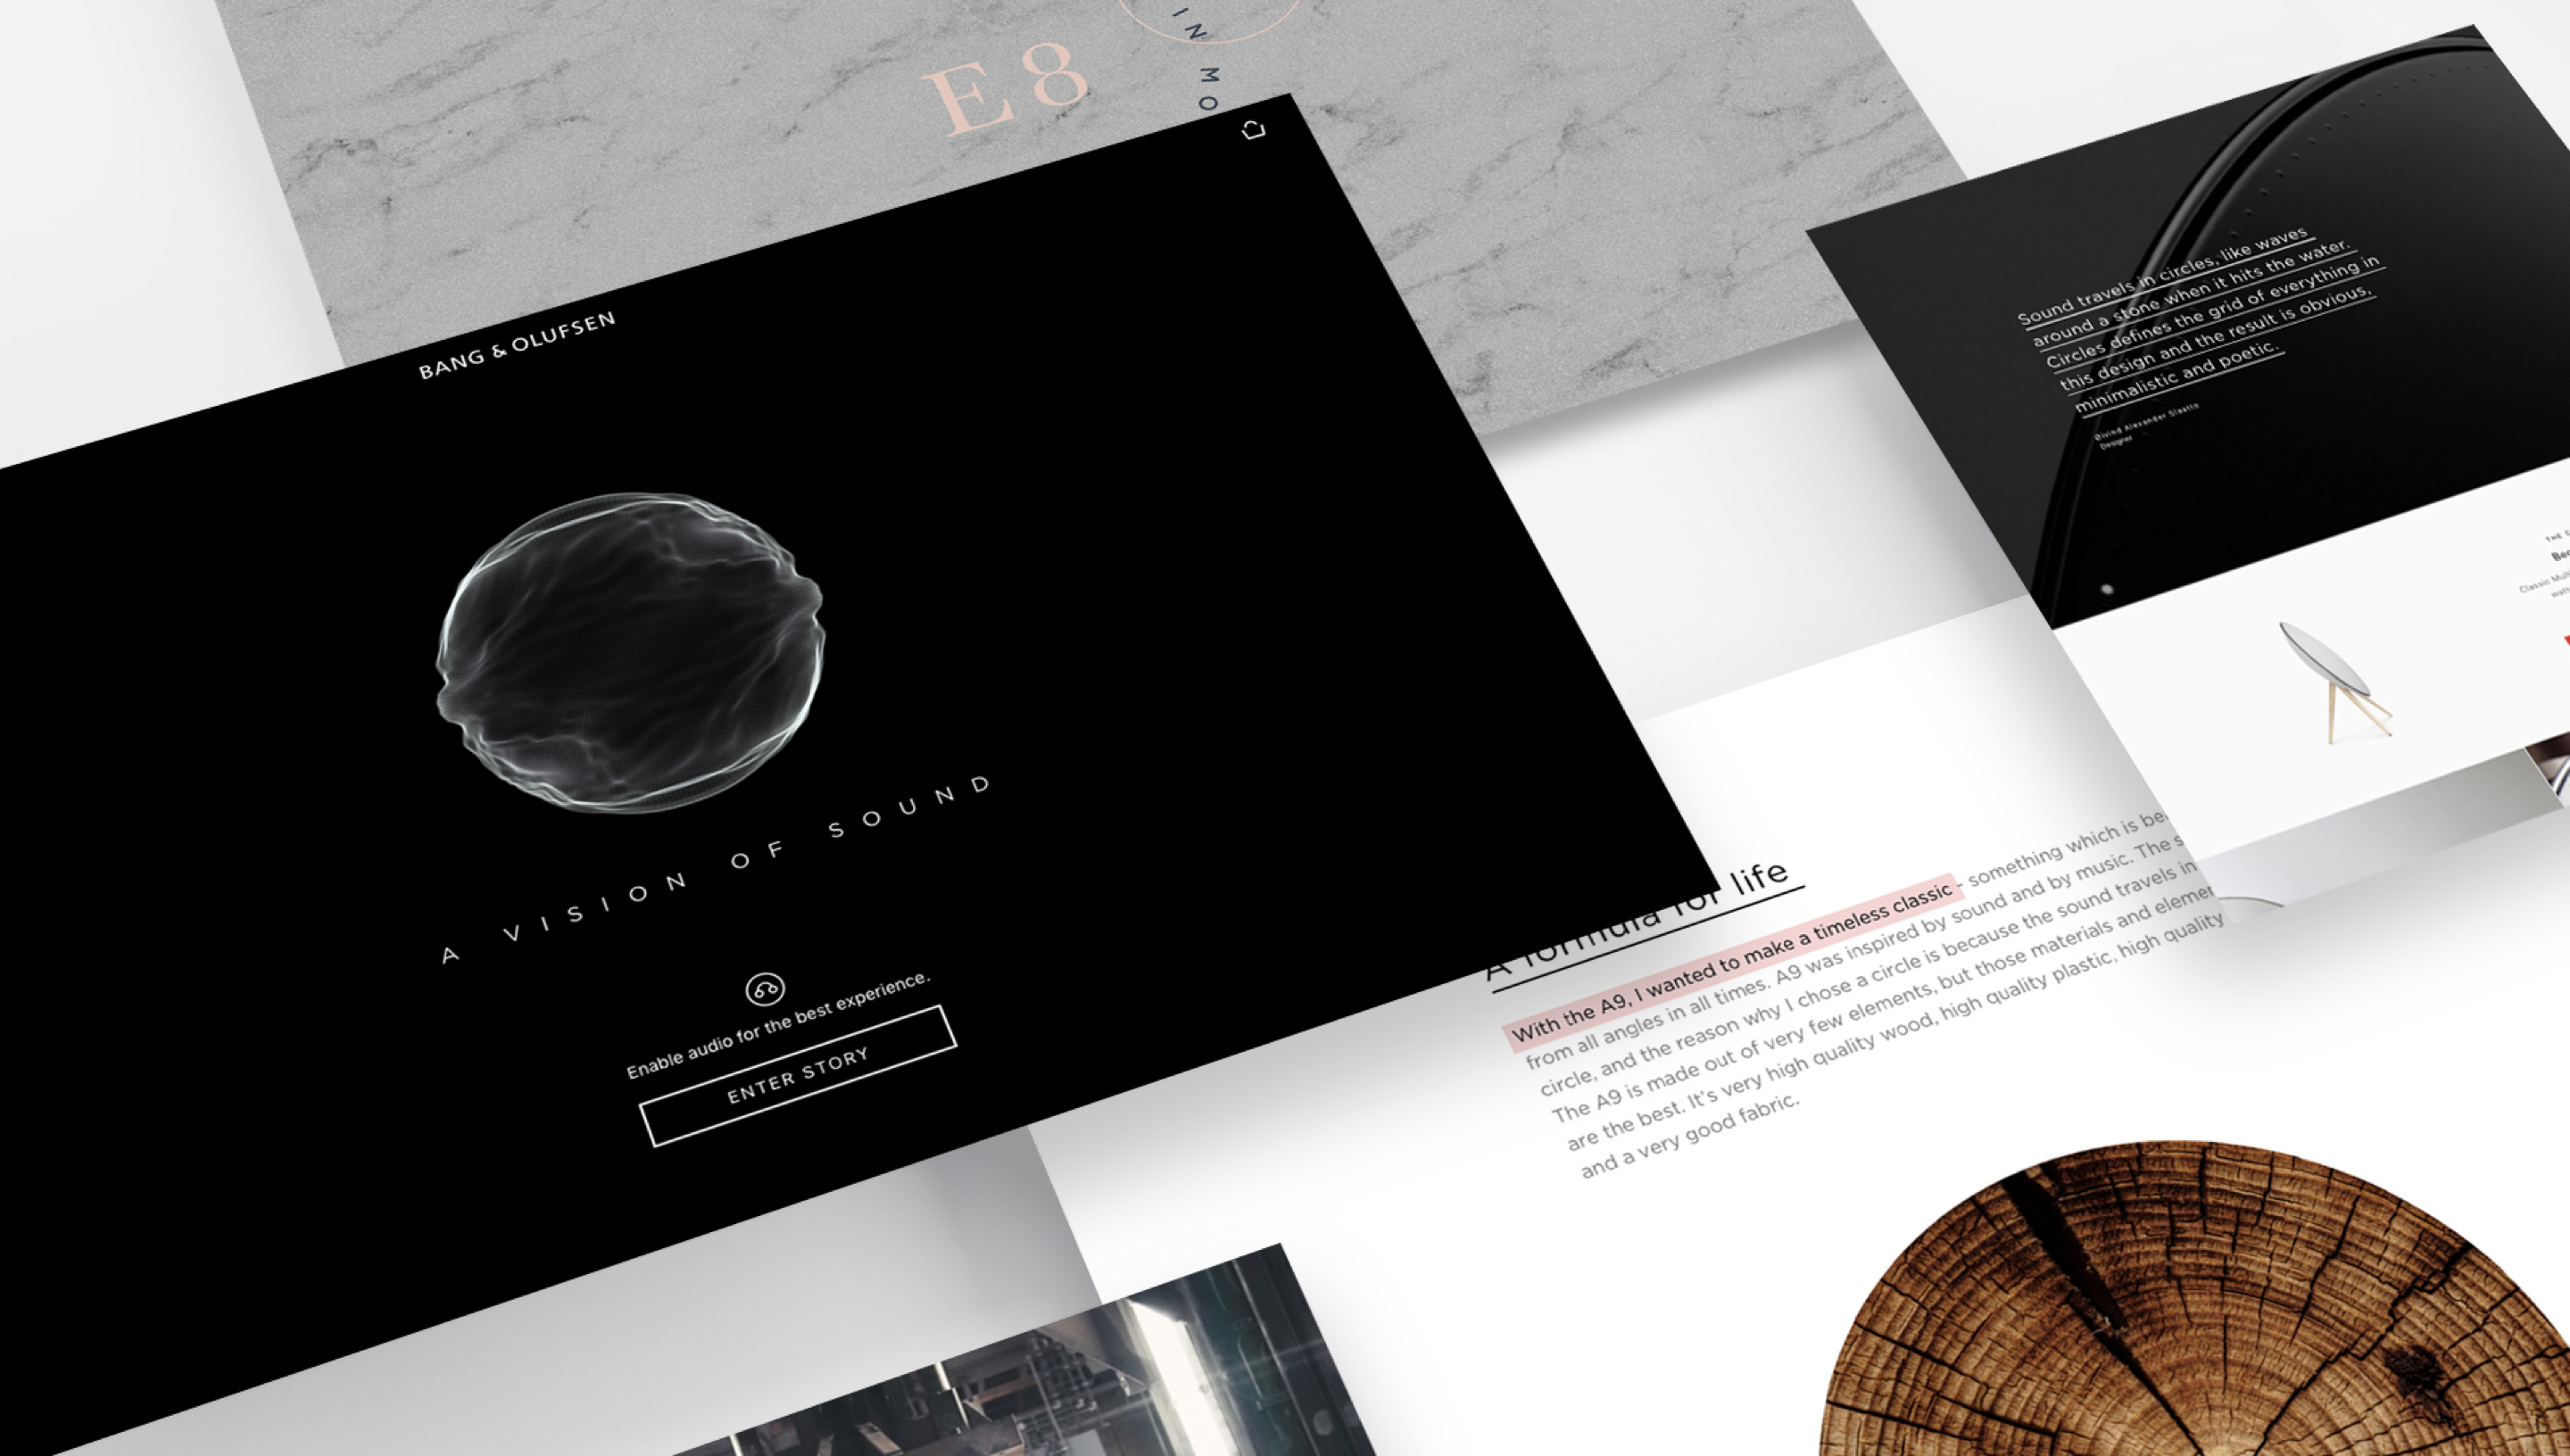 overview of Band & Olufsen digital collateral